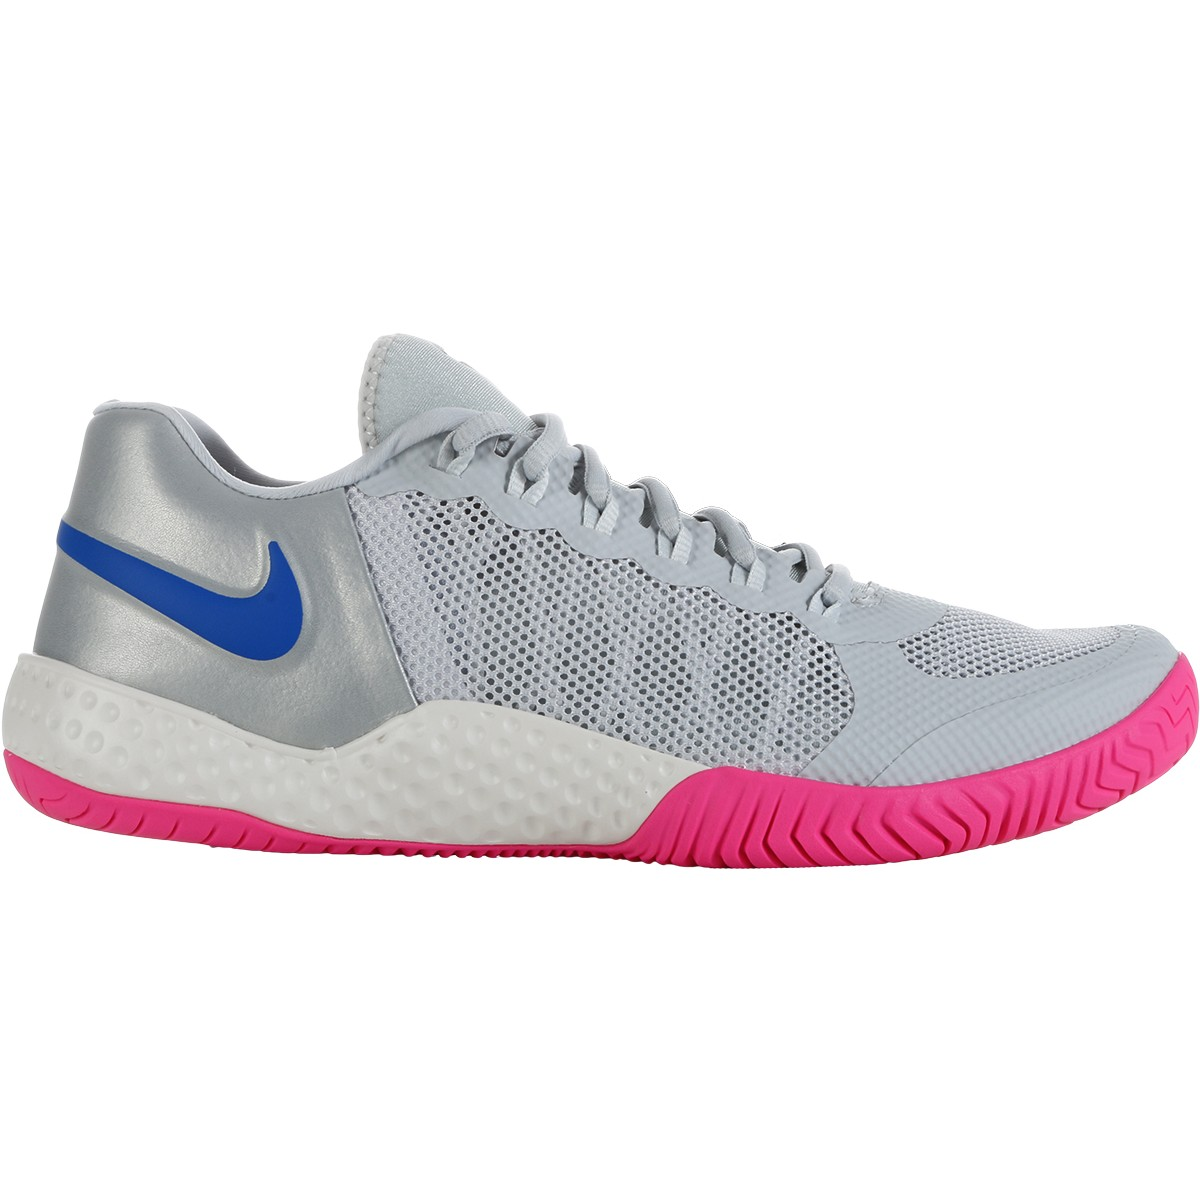 CHAUSSURES NIKE FEMME FLARE TOUTES SURFACES